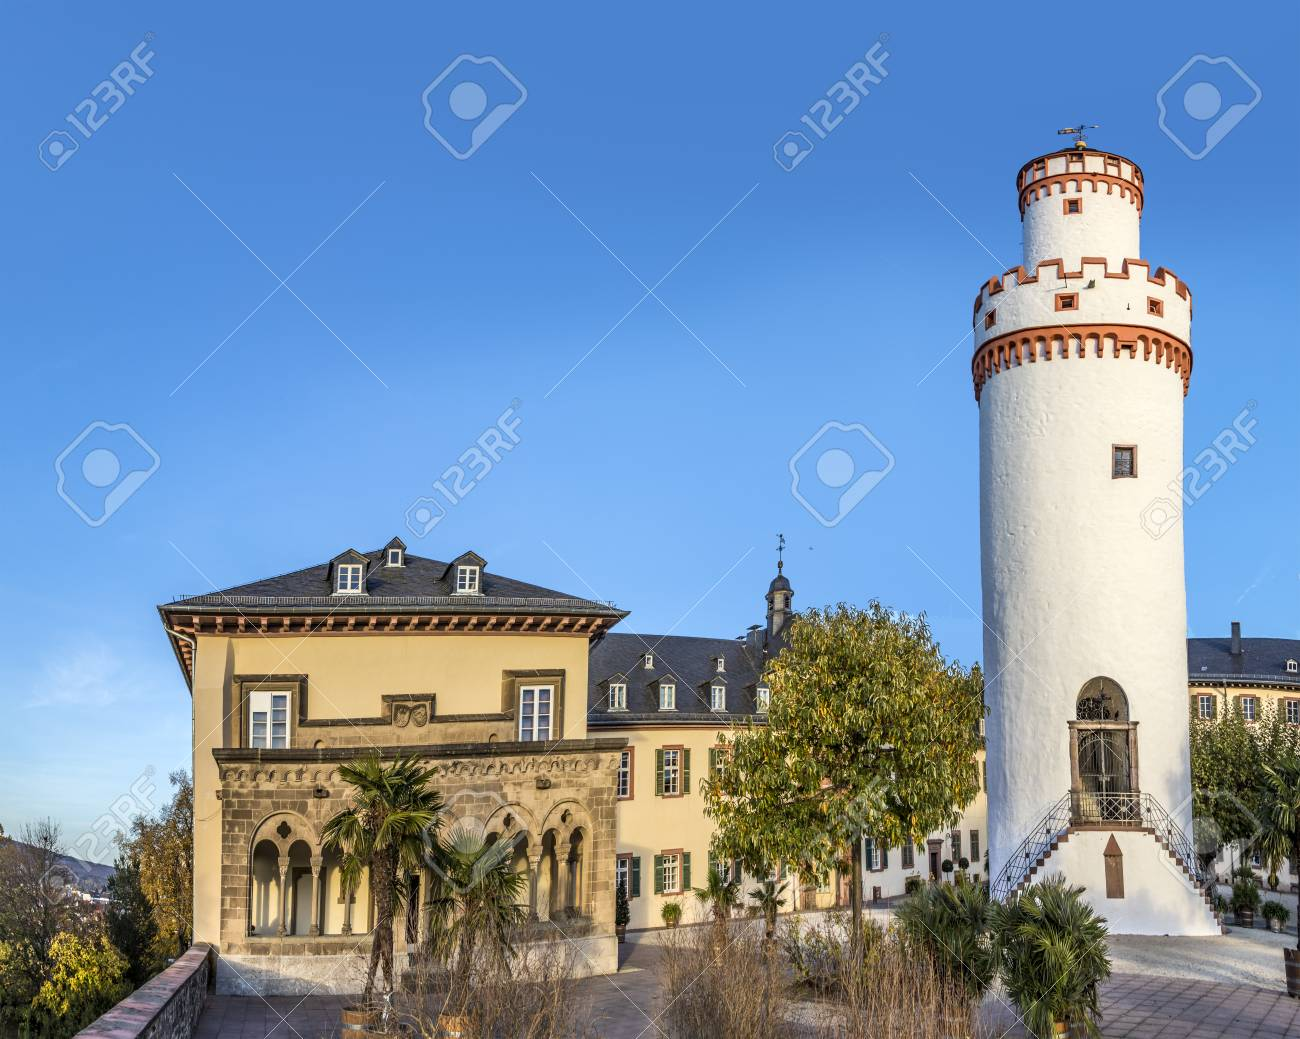 Bad Homburg Tower Of The Castle In Bad Homburg Germany